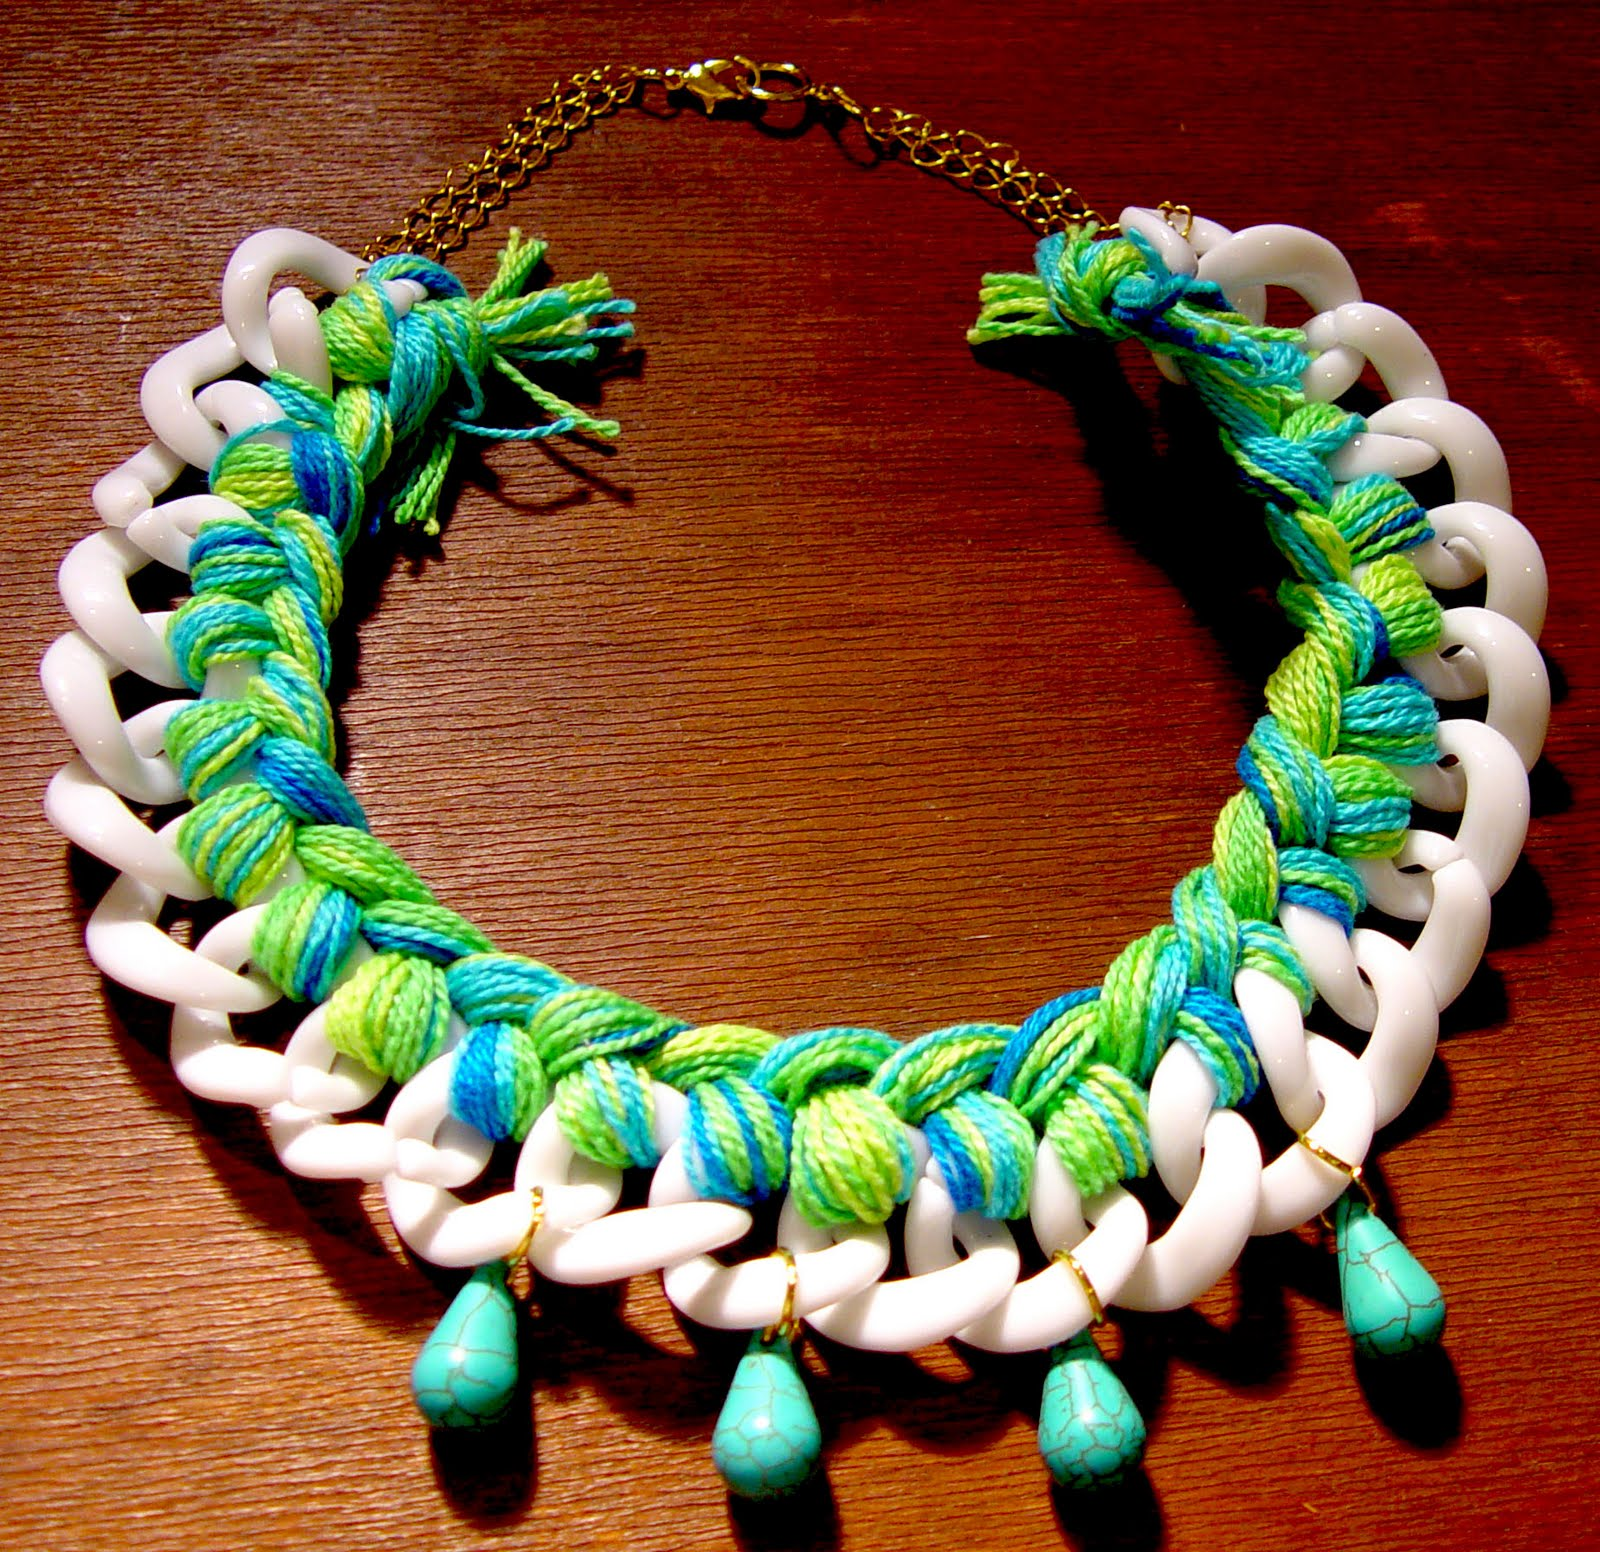 Life As Leah DIY Braided Chain Necklace REALLY AWESOME - Diy braided necklace